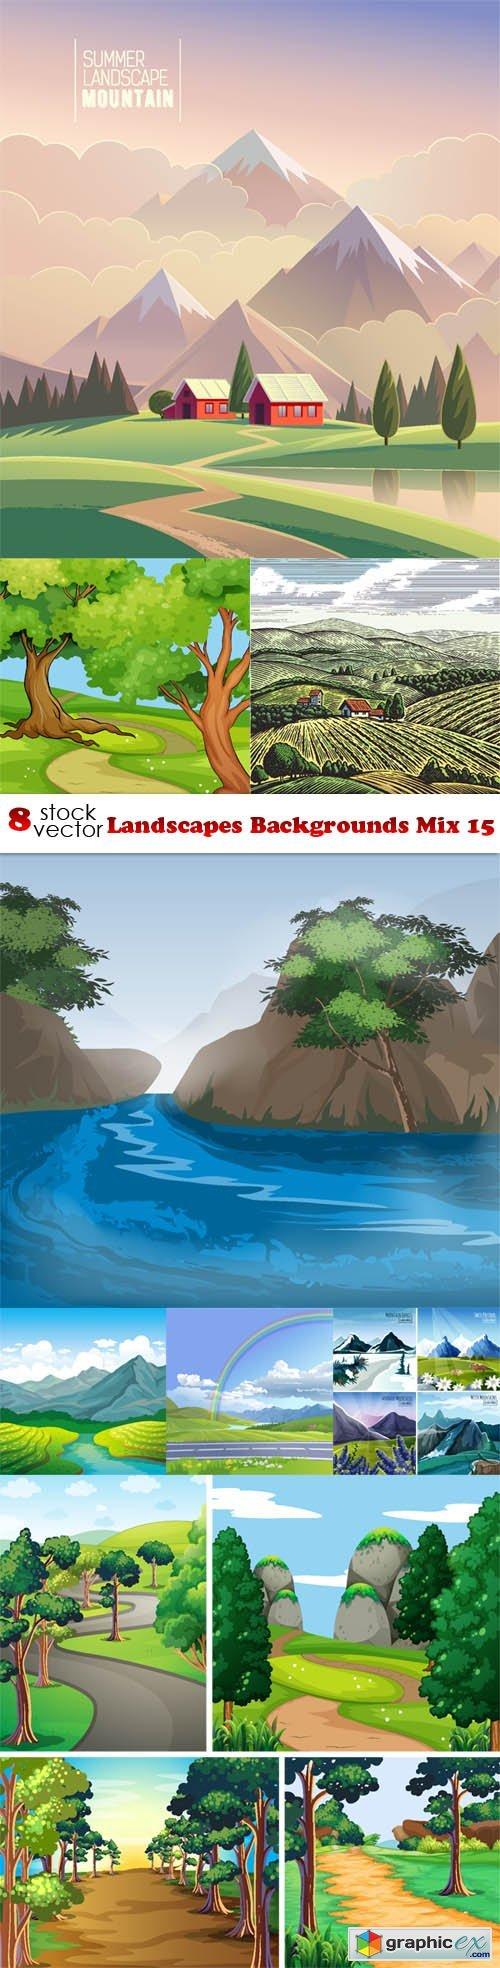 Landscapes Backgrounds Mix 15